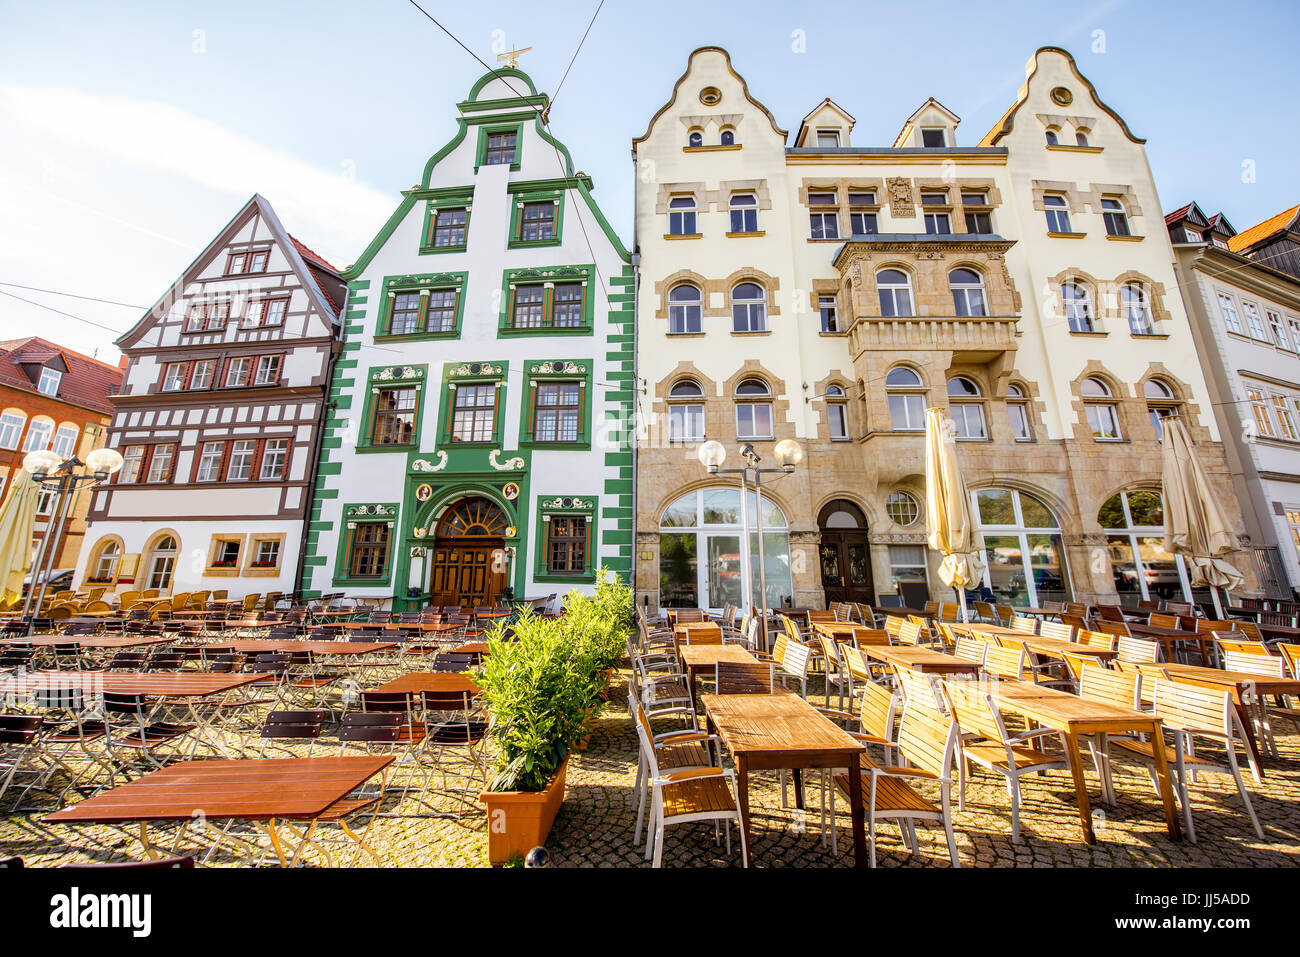 Erfurt city in Germany Stock Photo